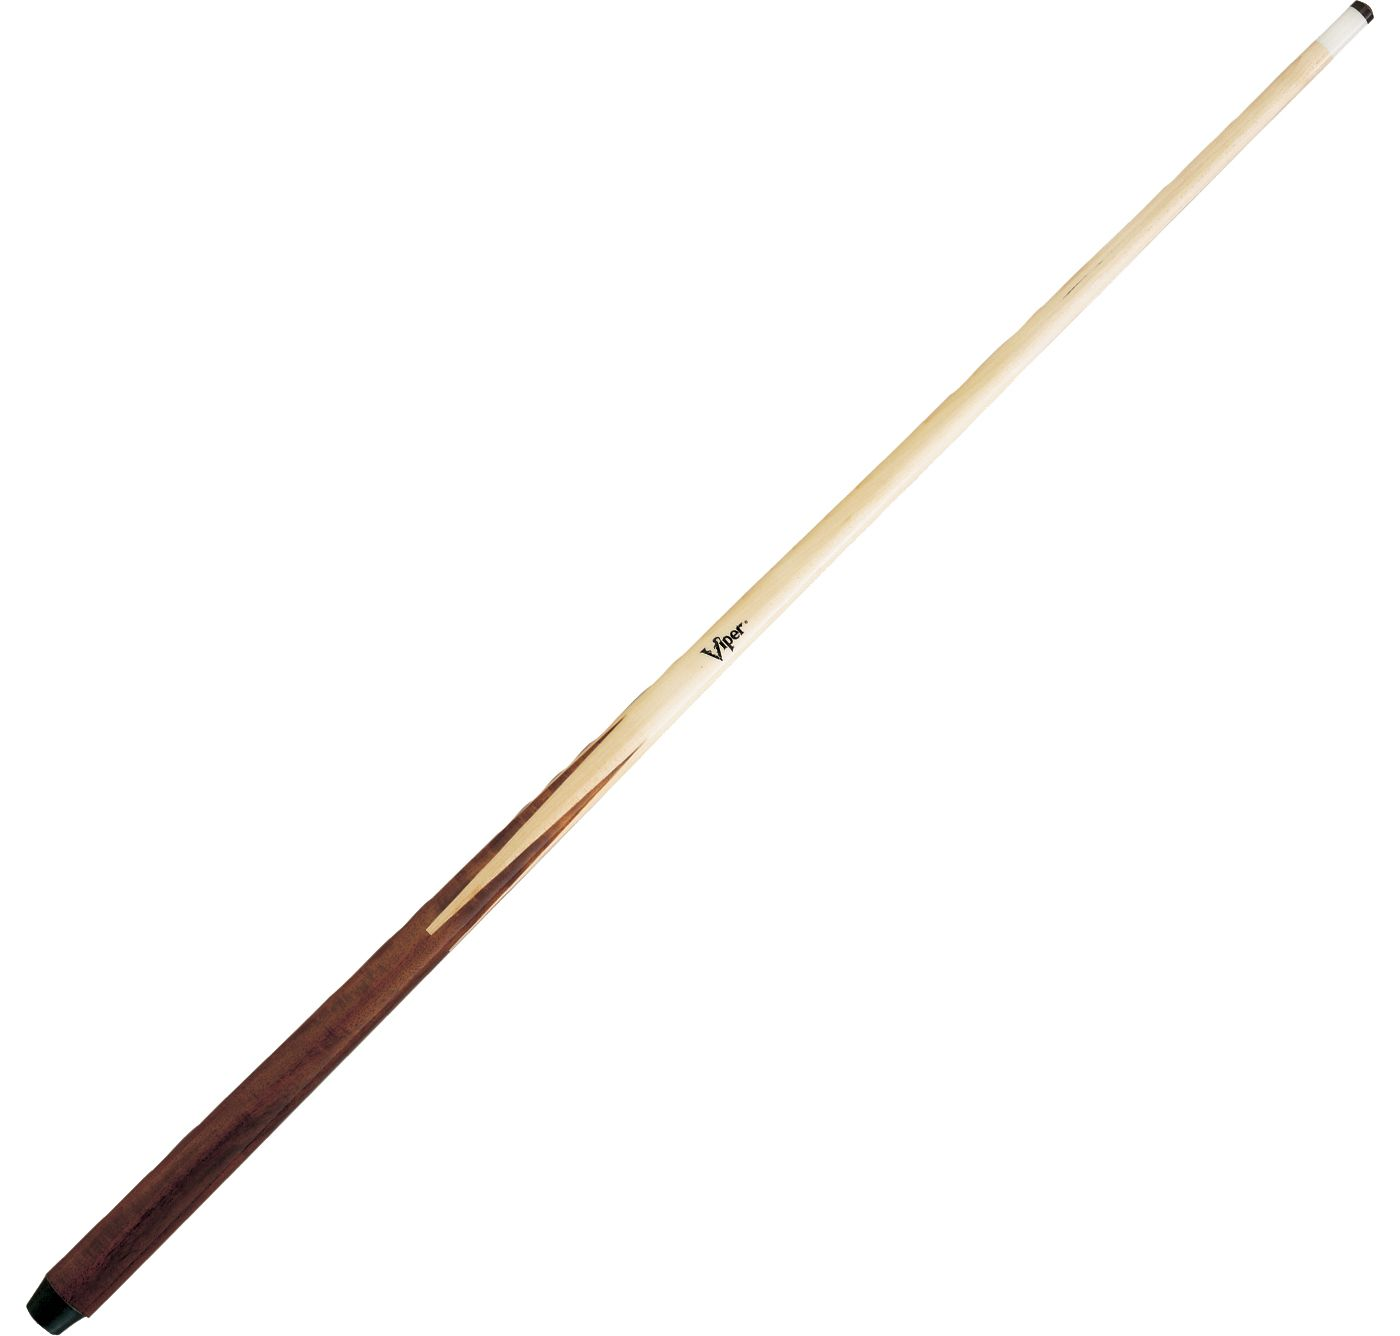 "Viper 57"" Maple Bar 21oz Pool Cue"